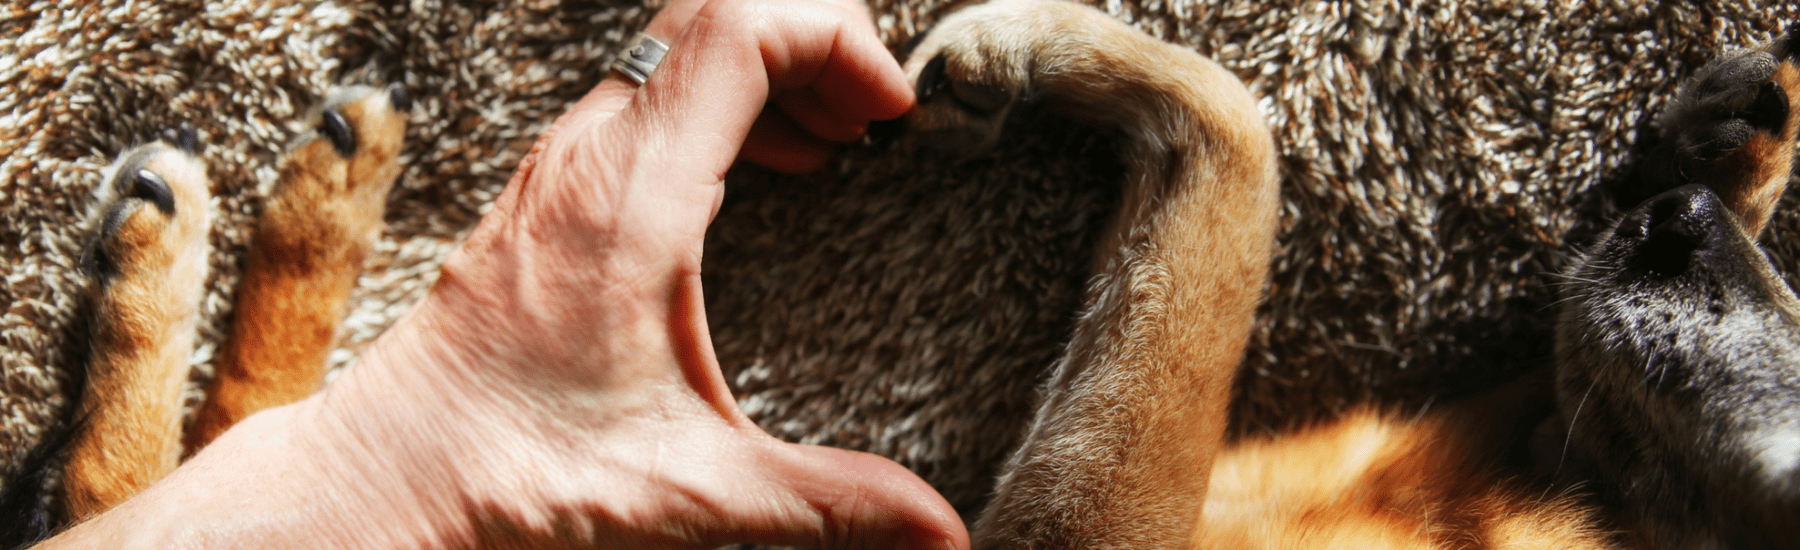 Human hand and dog paw forming a heart shape